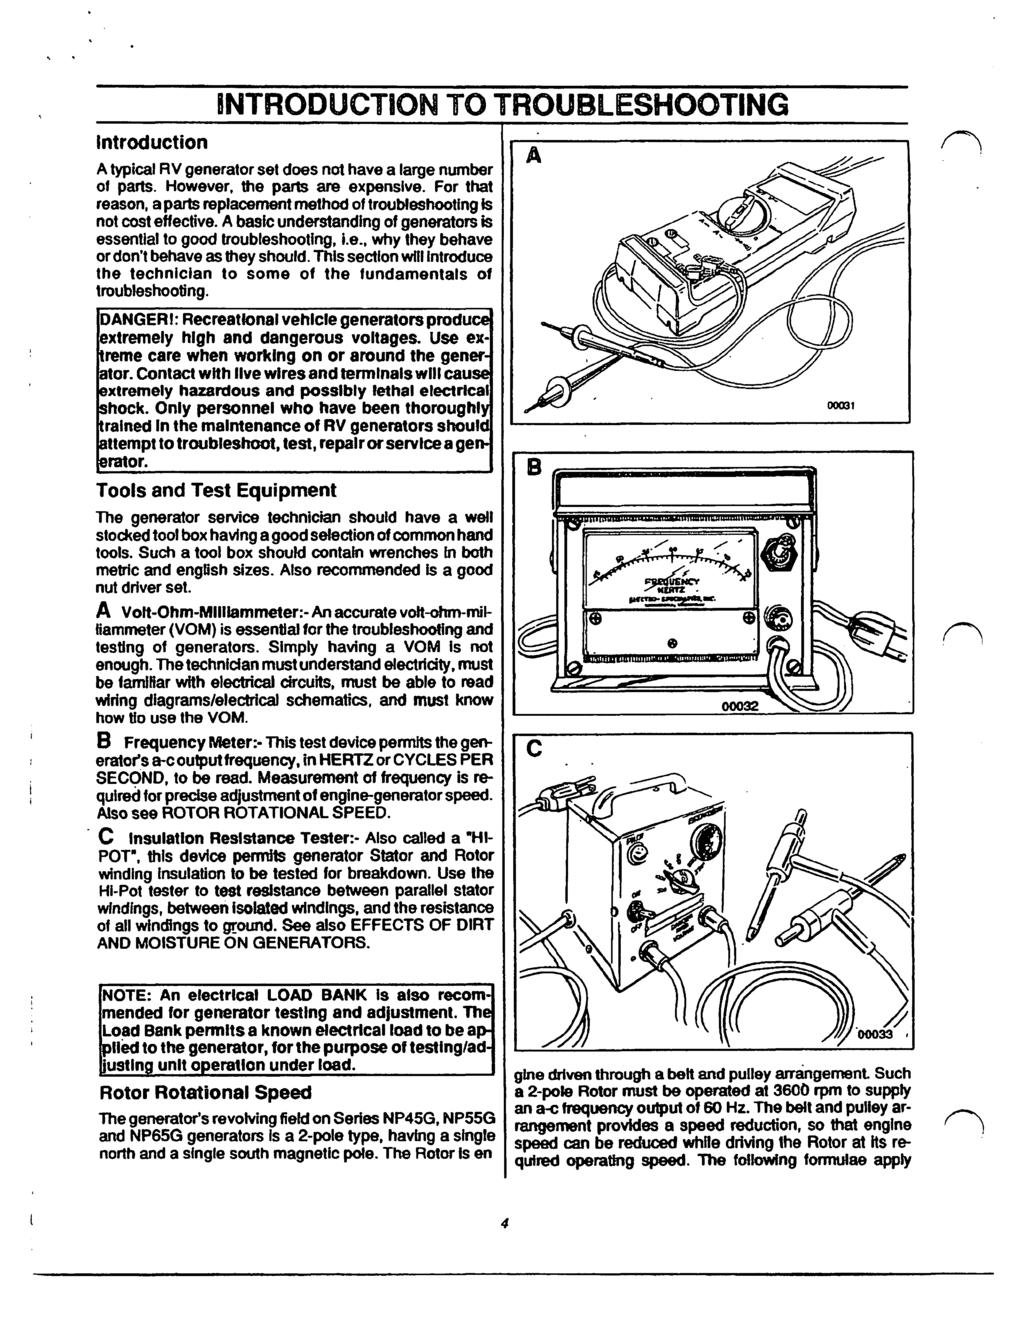 ntroduction NTRODUCTON TO TROUBLESHOOTNG A typical RV generator set does  not have a large number of